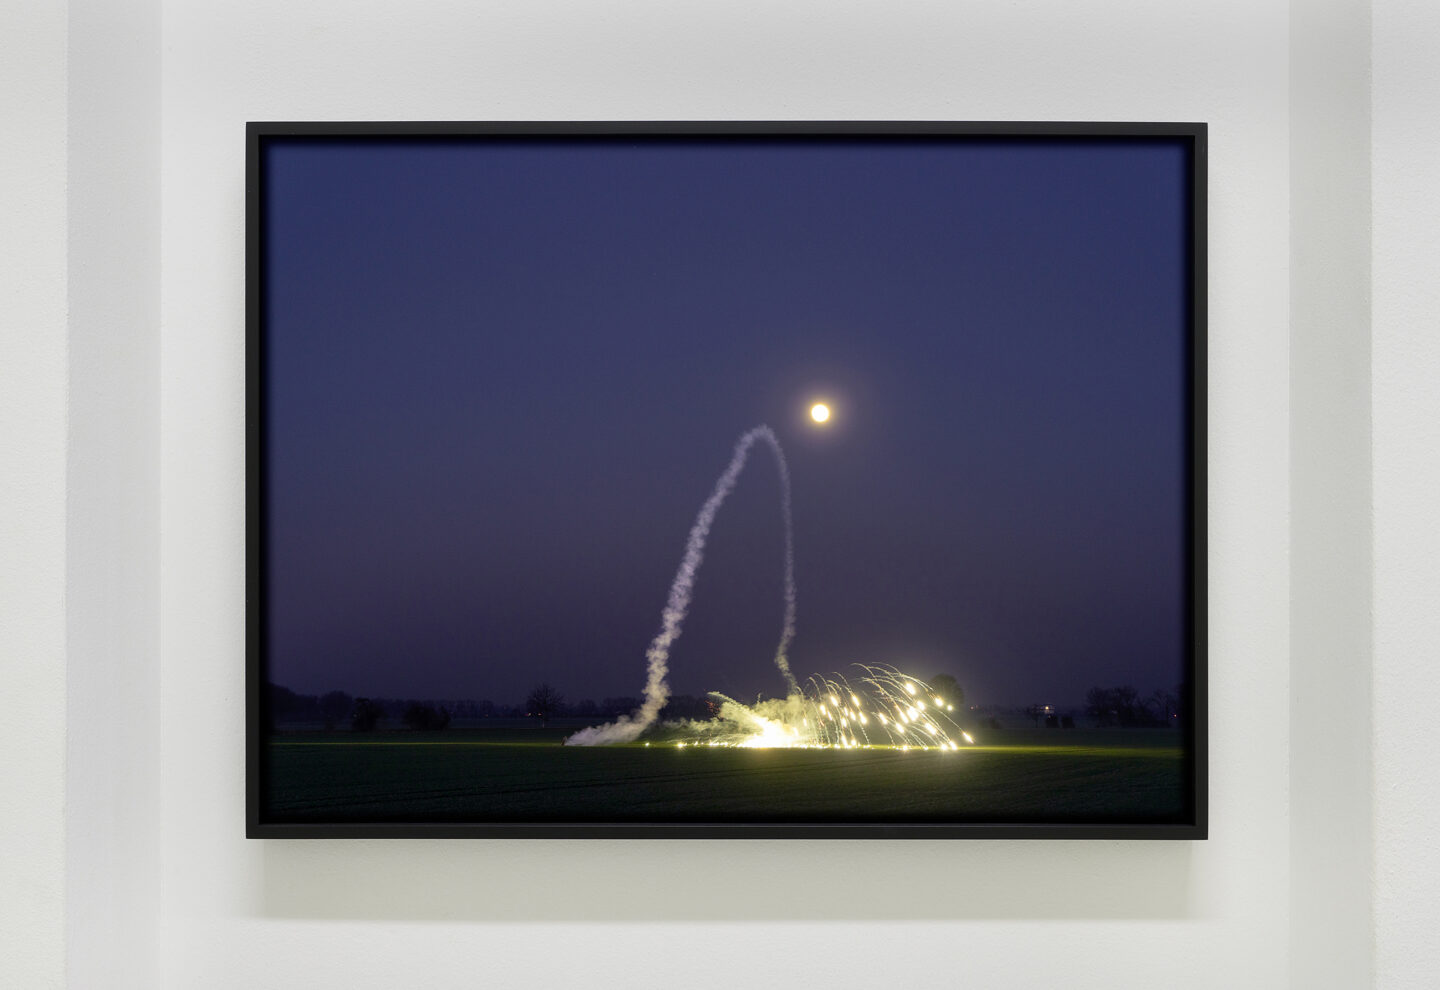 Exhibition View Malte Bartsch Soloshow «Bottom Up; view on Malte Bartsch, Rakete, [Foto] 2019, C-Print, 54 x 73 cm» at Lemoyne Project, Zurich, 2020 / Courtesy: the artist and Lemoyne Project